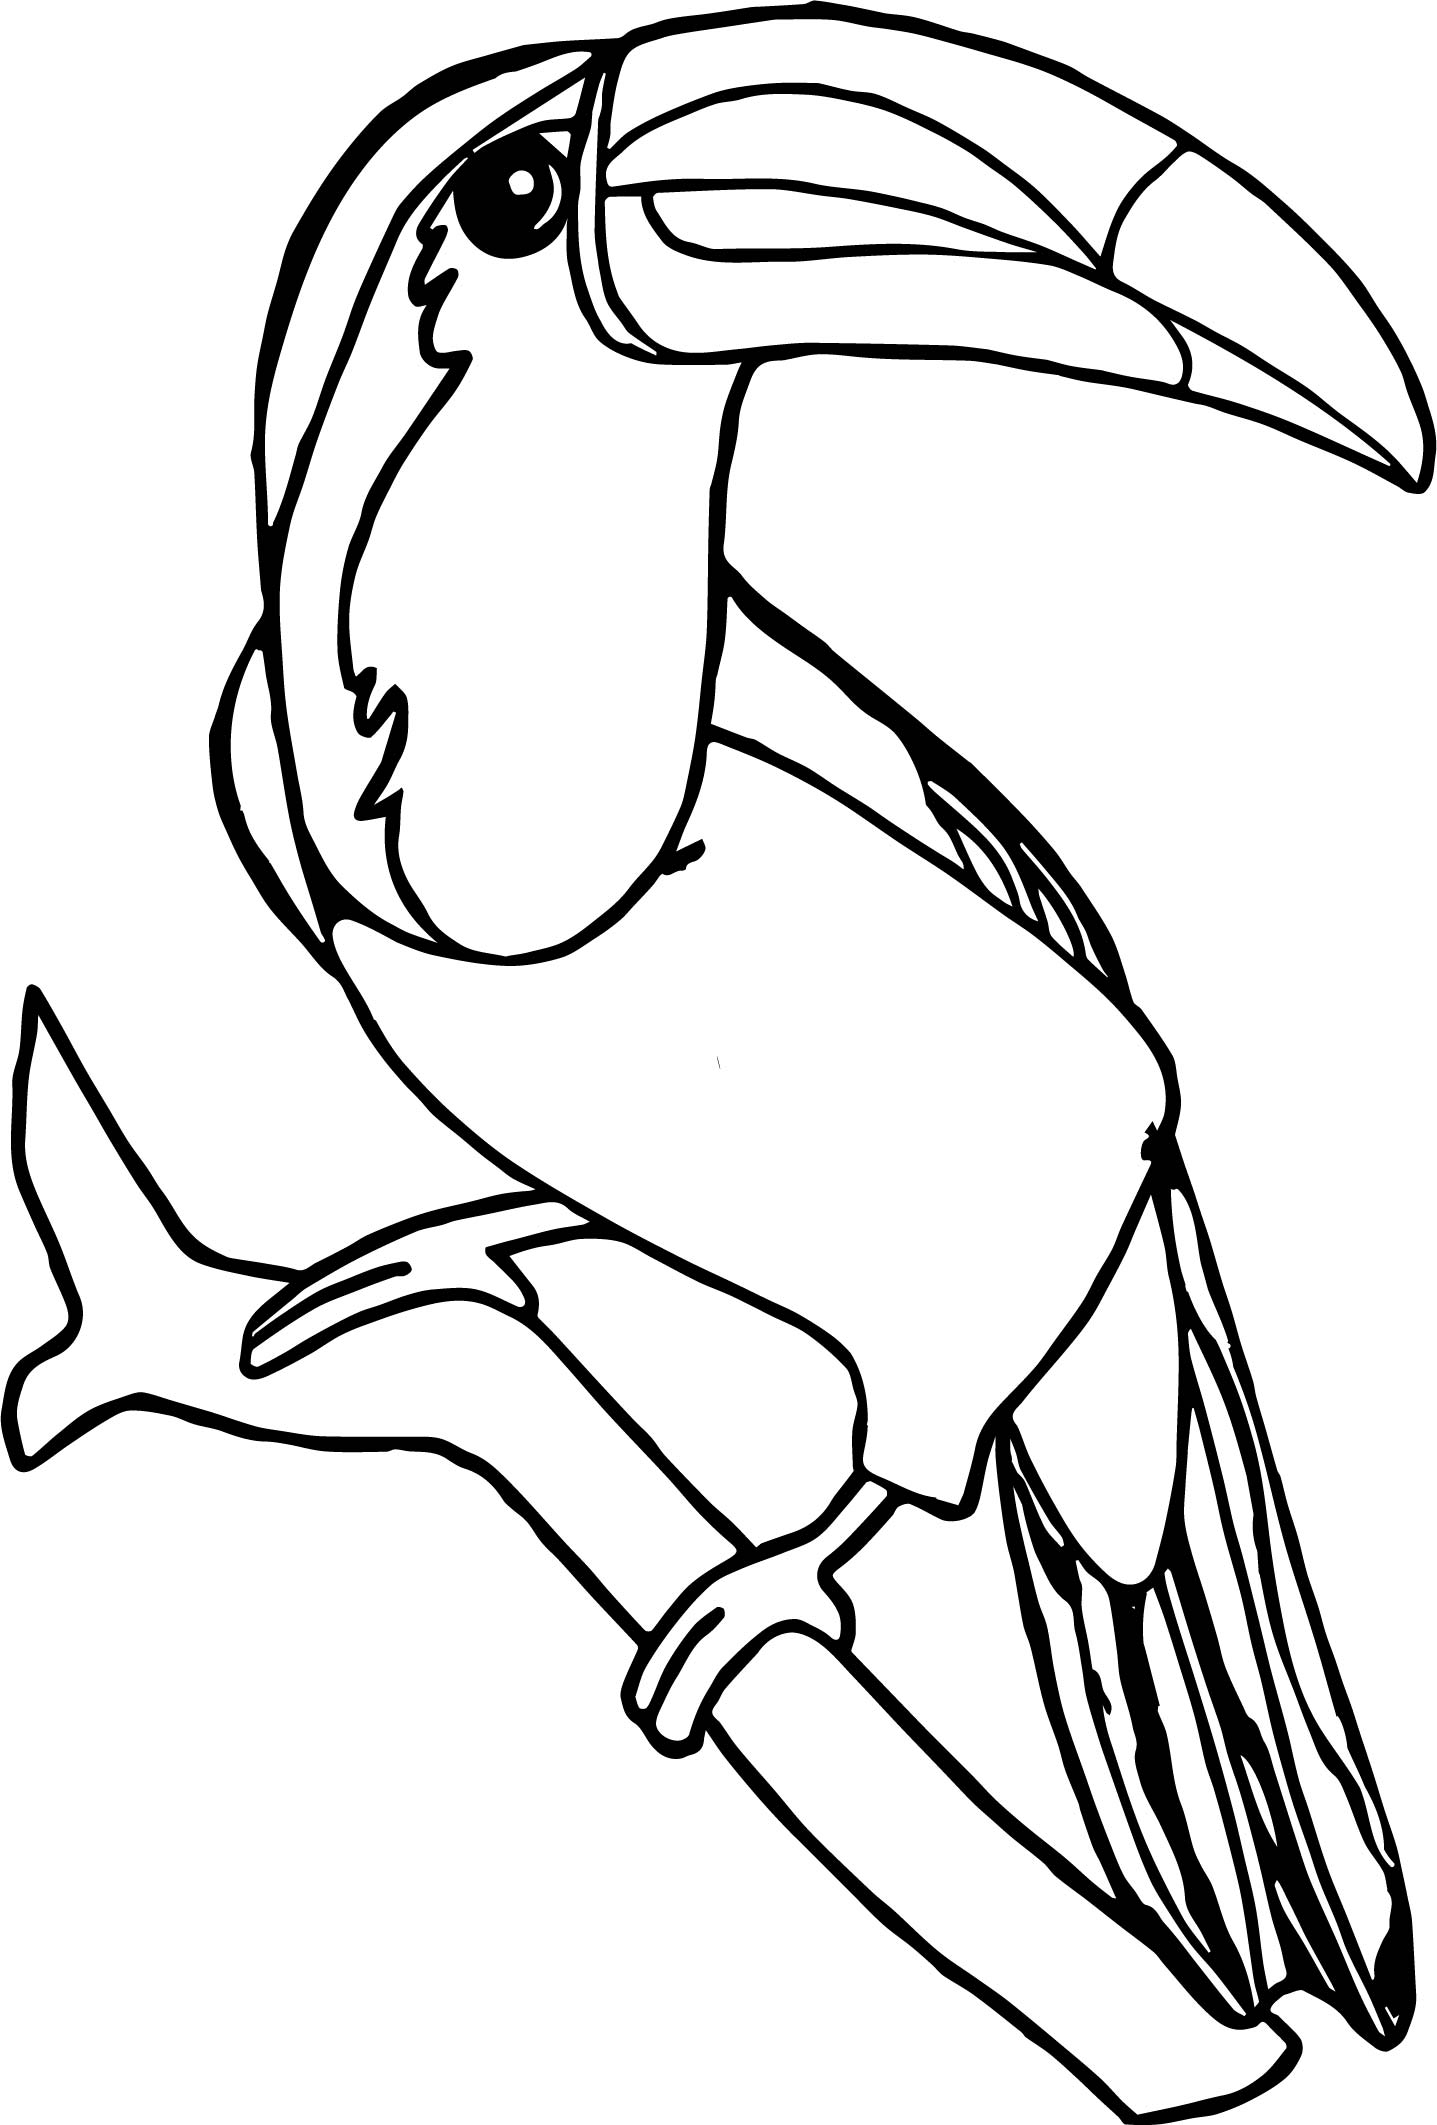 1437x2125 Toucan Animal Coloring Pages Toucan Animal Coloring Pages